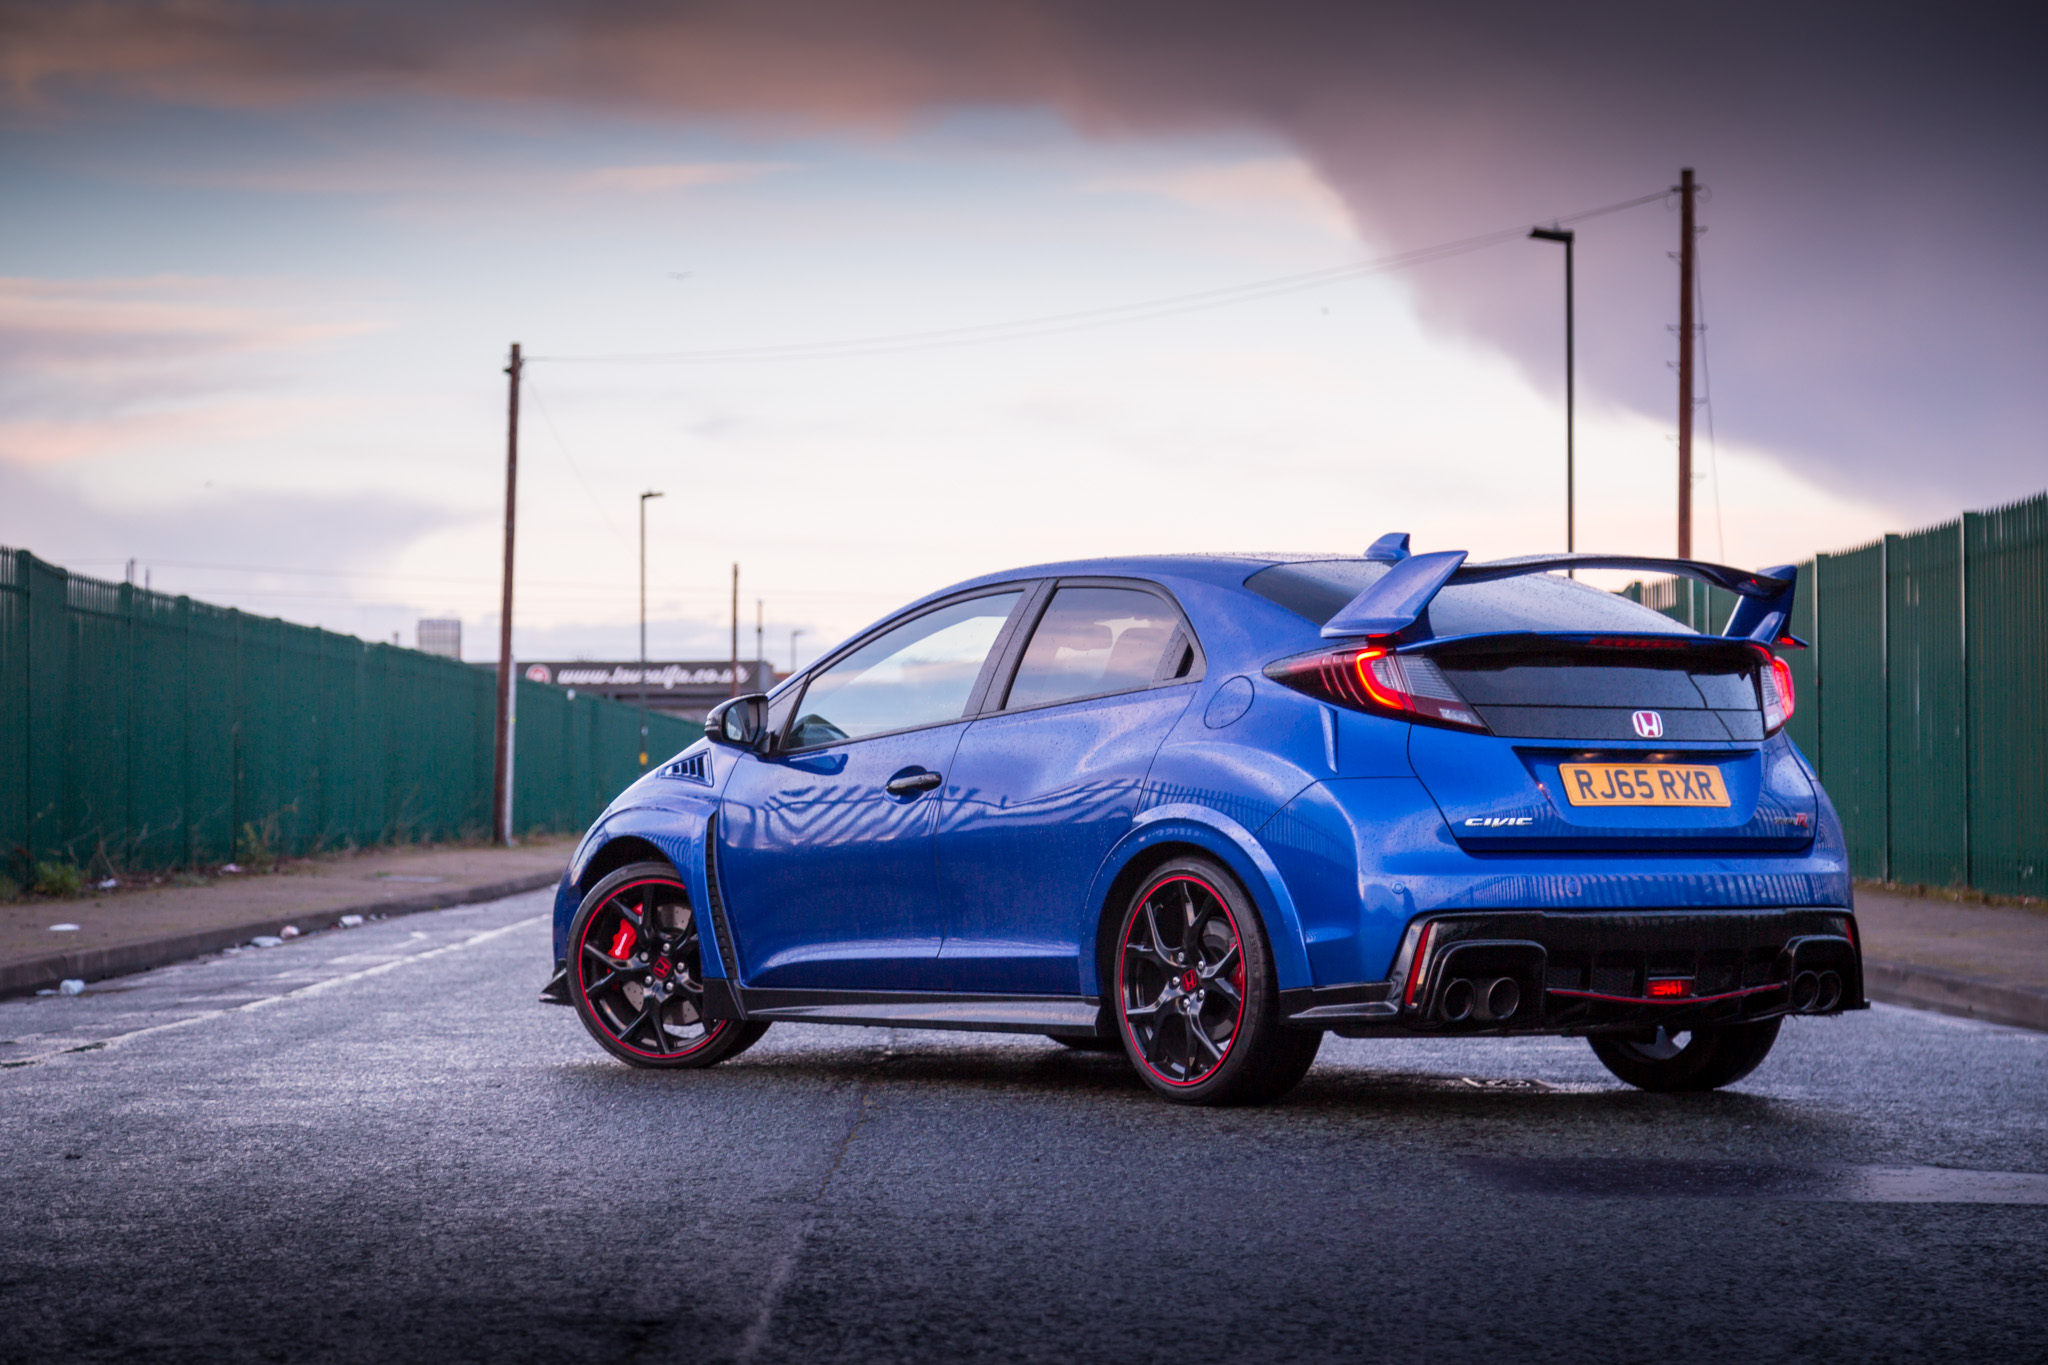 How To Make Your Car Look Sporty Even On A Tight Budget?